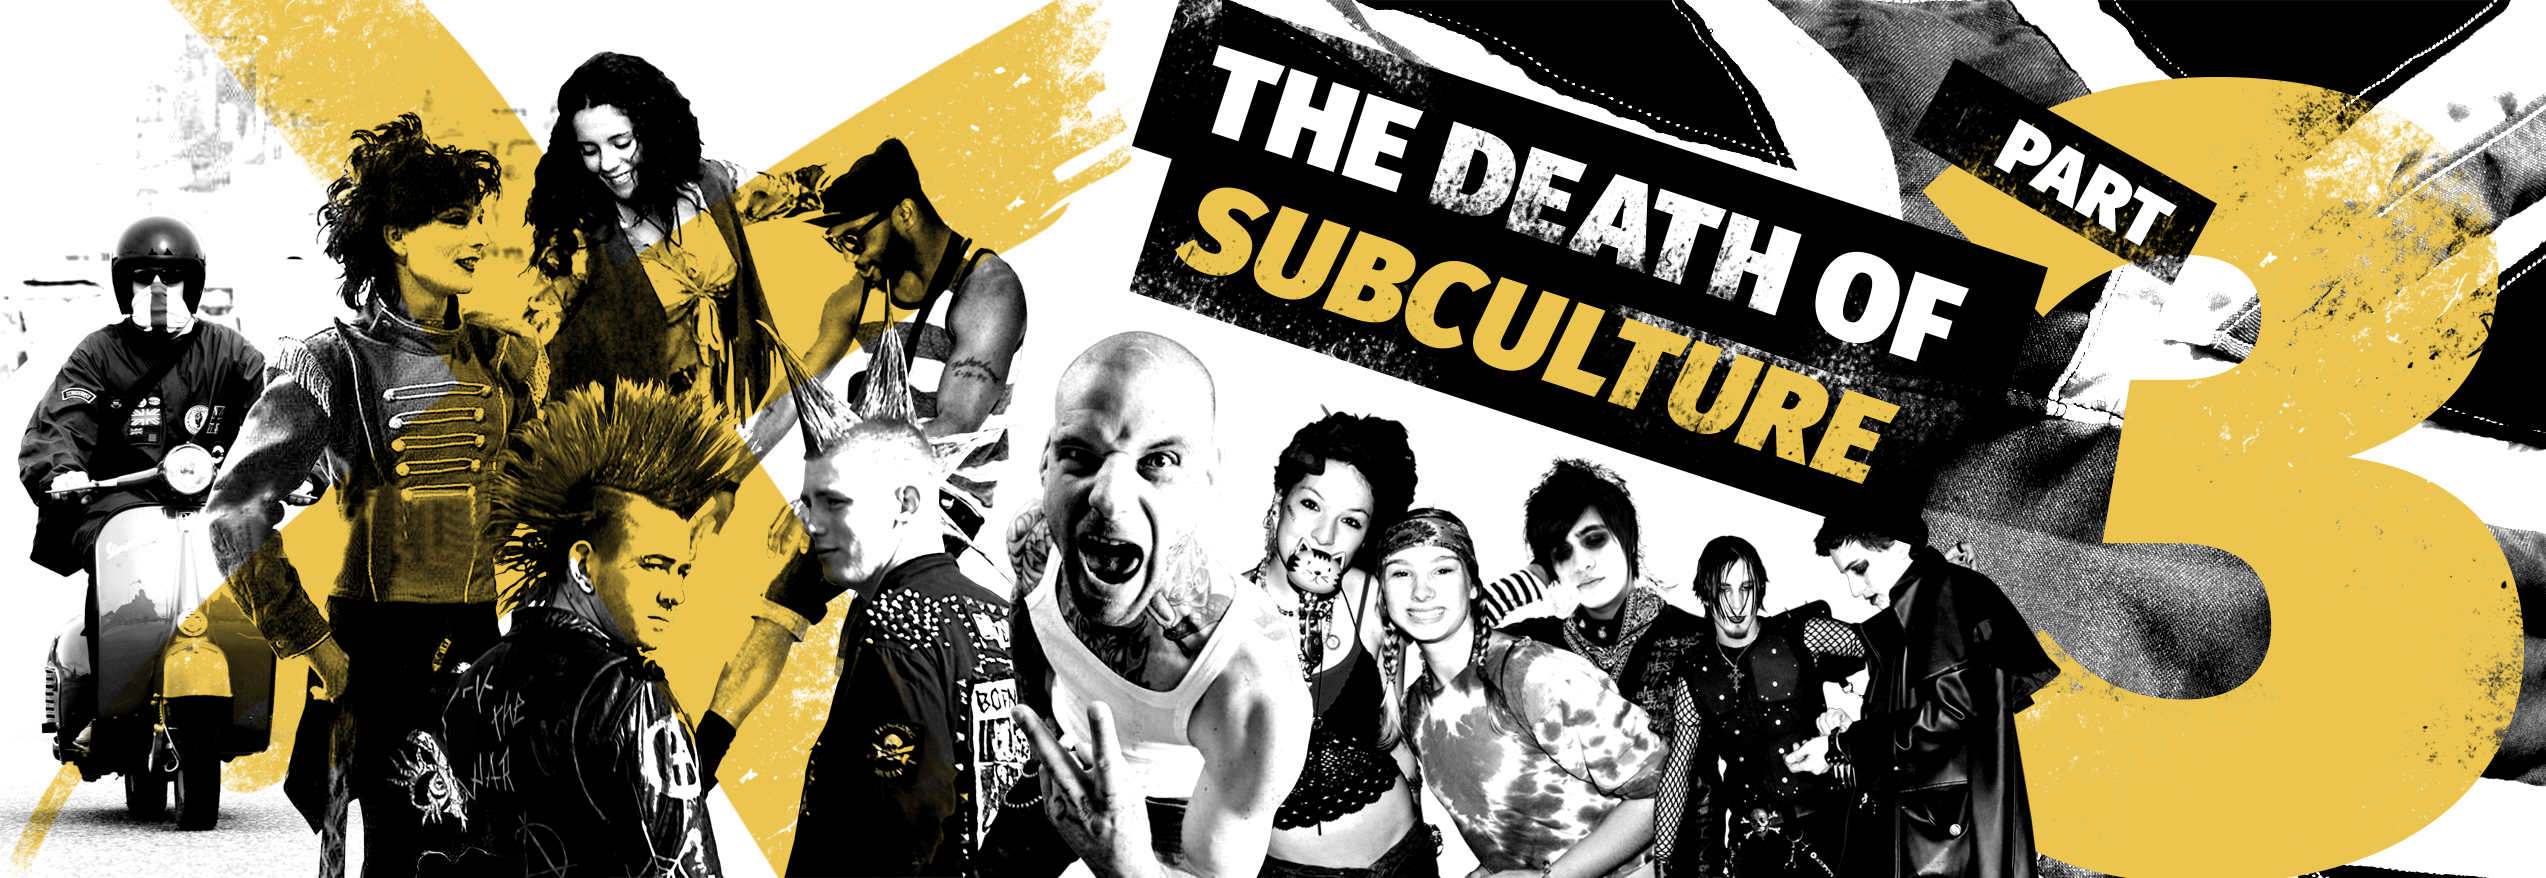 The Death Of Subculture part 3: the role of poverty and social class